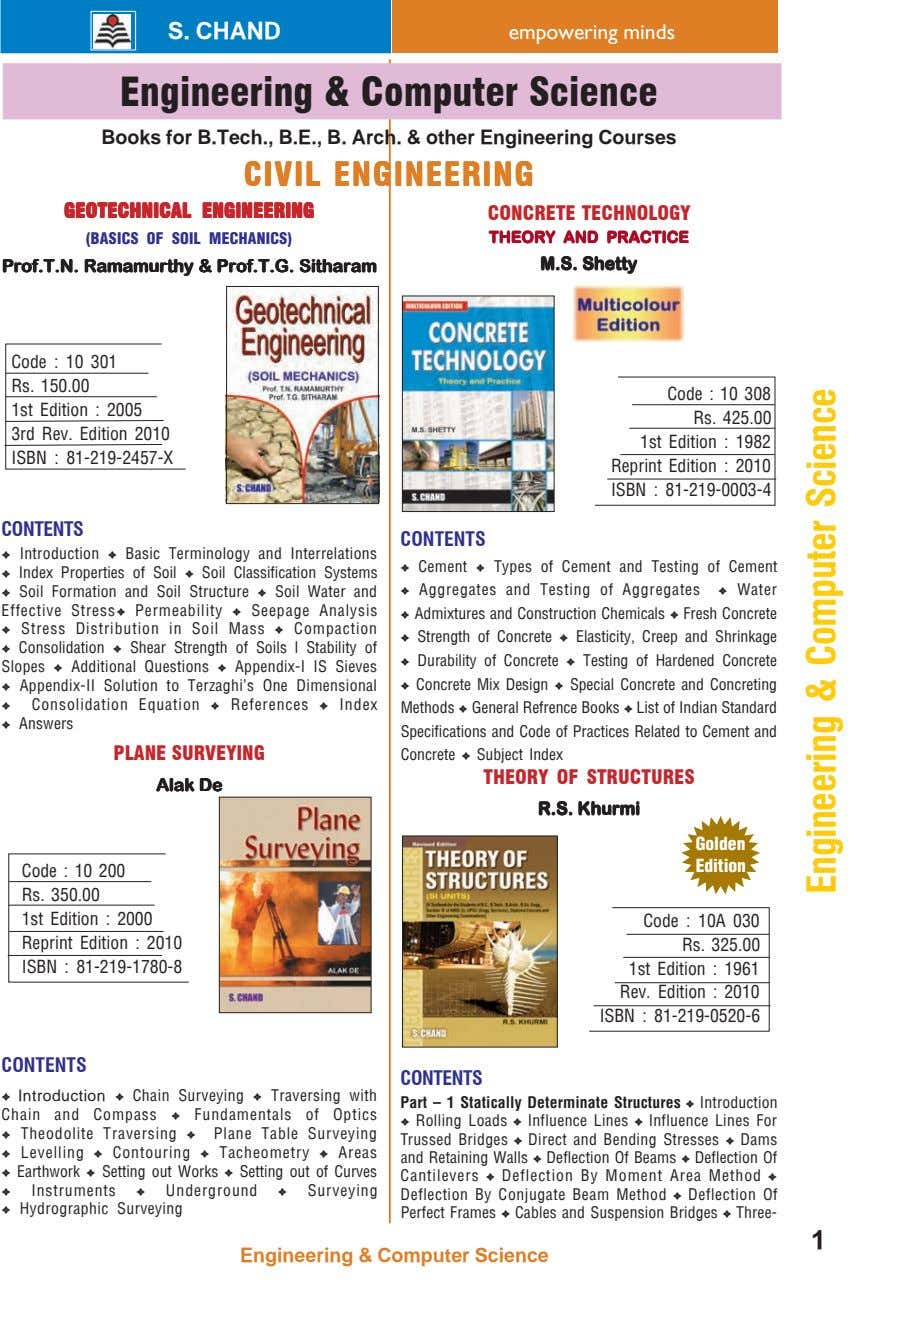 S. CHAND empowering minds Engineering & Computer Science Books for B.Tech., B.E., B. Arch. & other